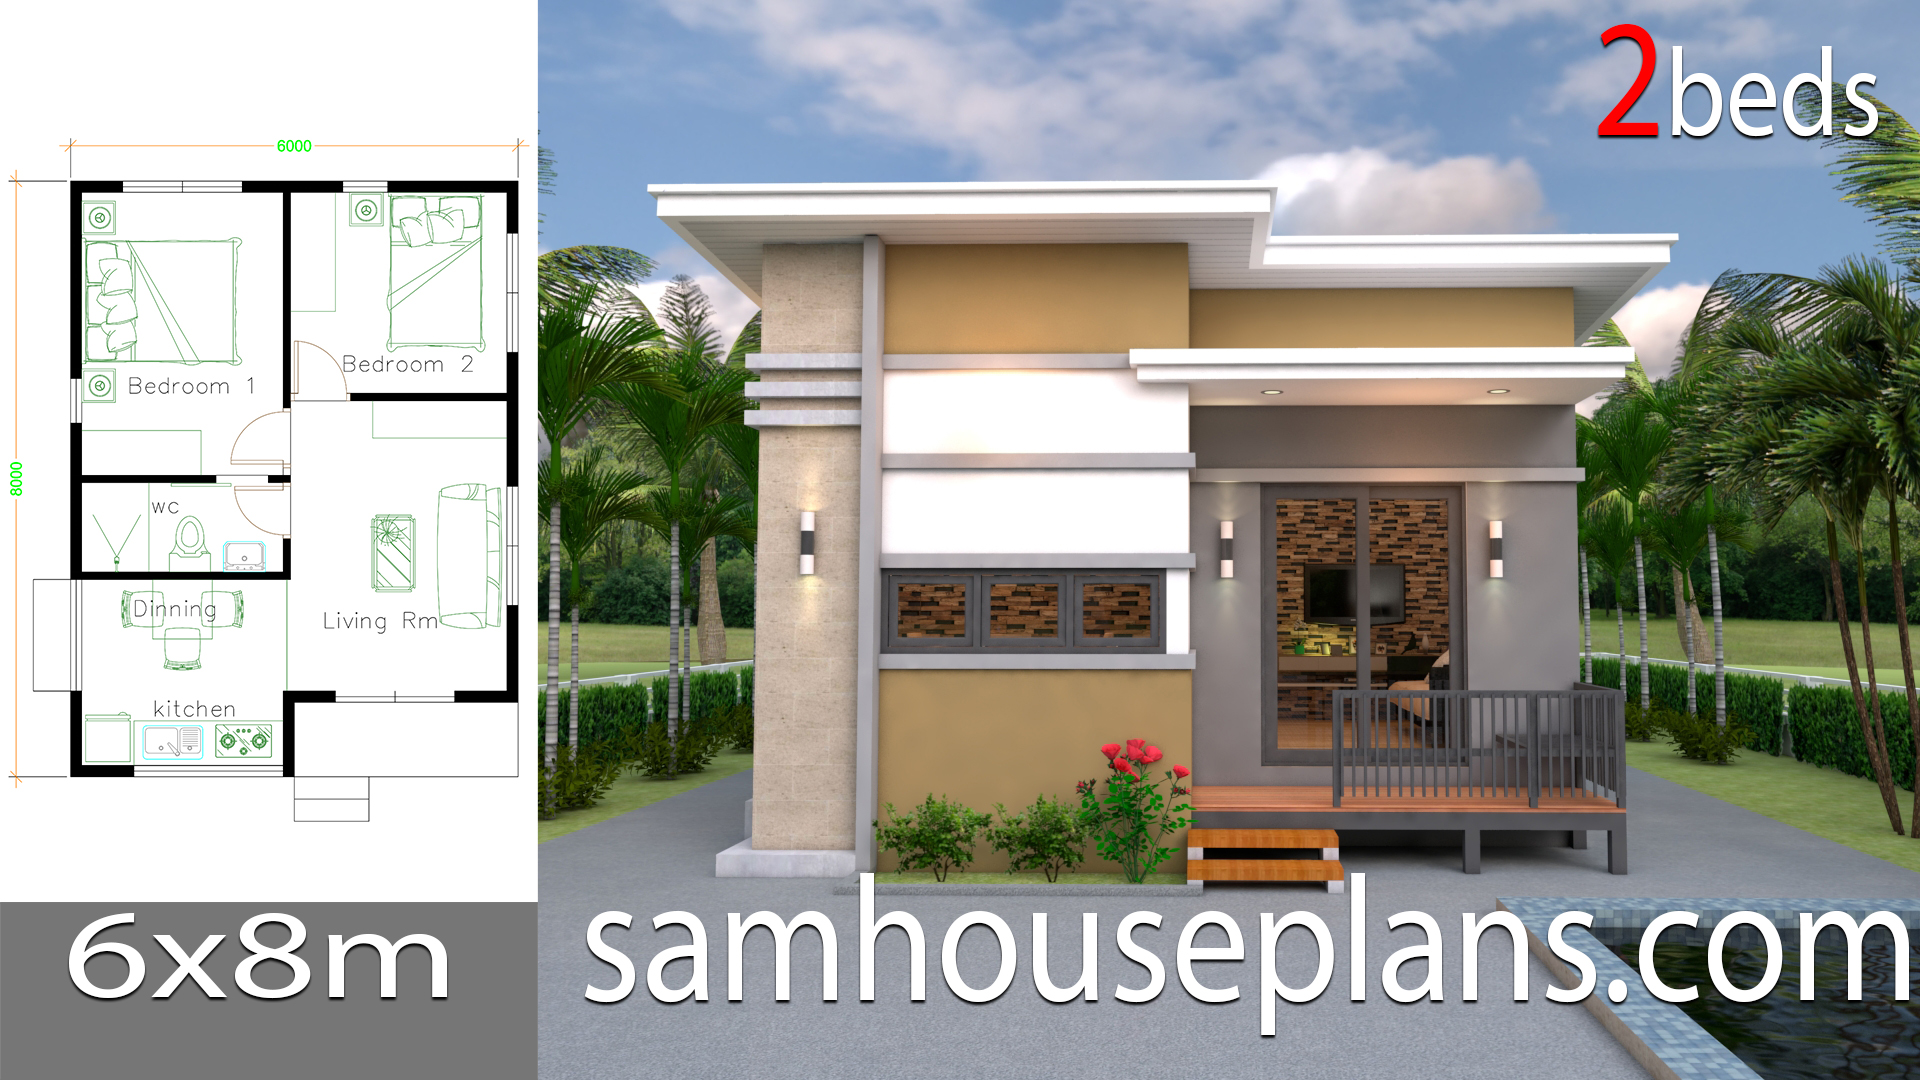 House Design Plans 6x8 with 2 Bedrooms - Sam House Plans